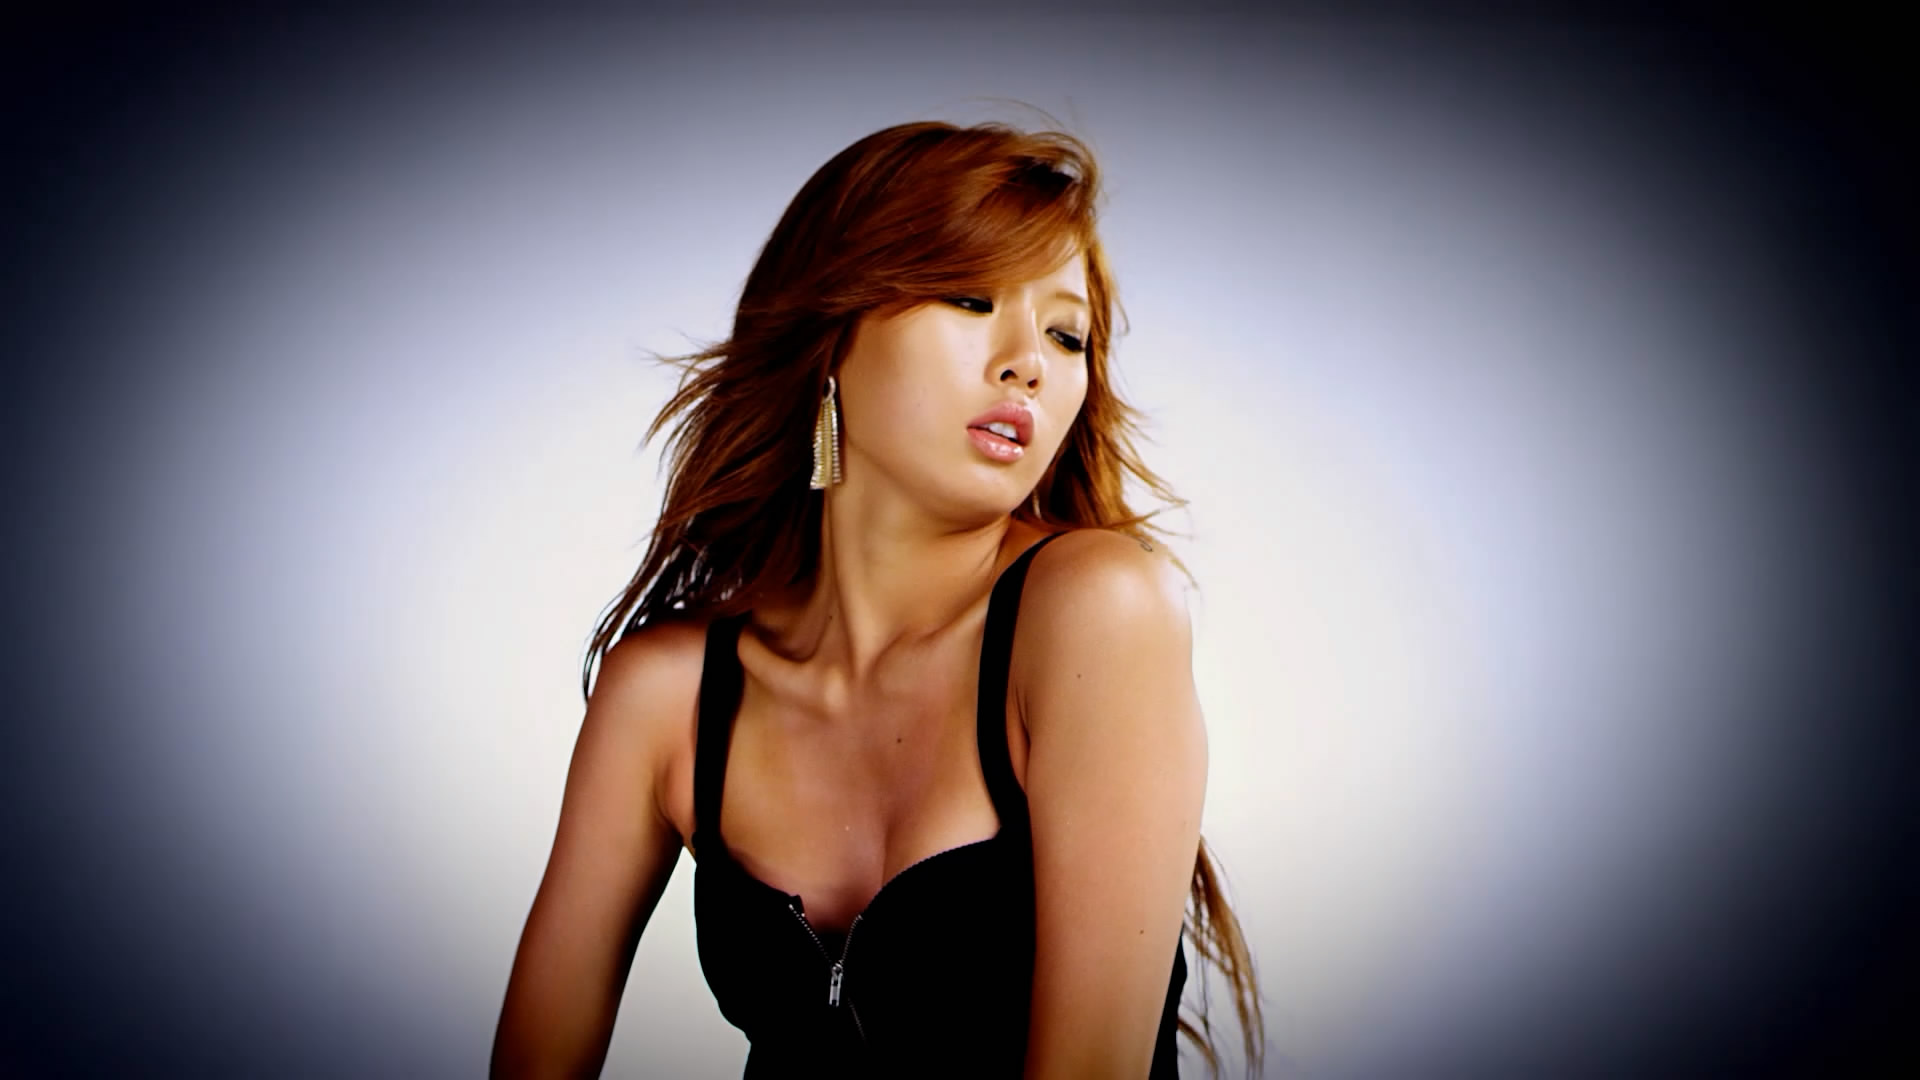 Hyuna images Hyuna HD wallpaper and background photos ...